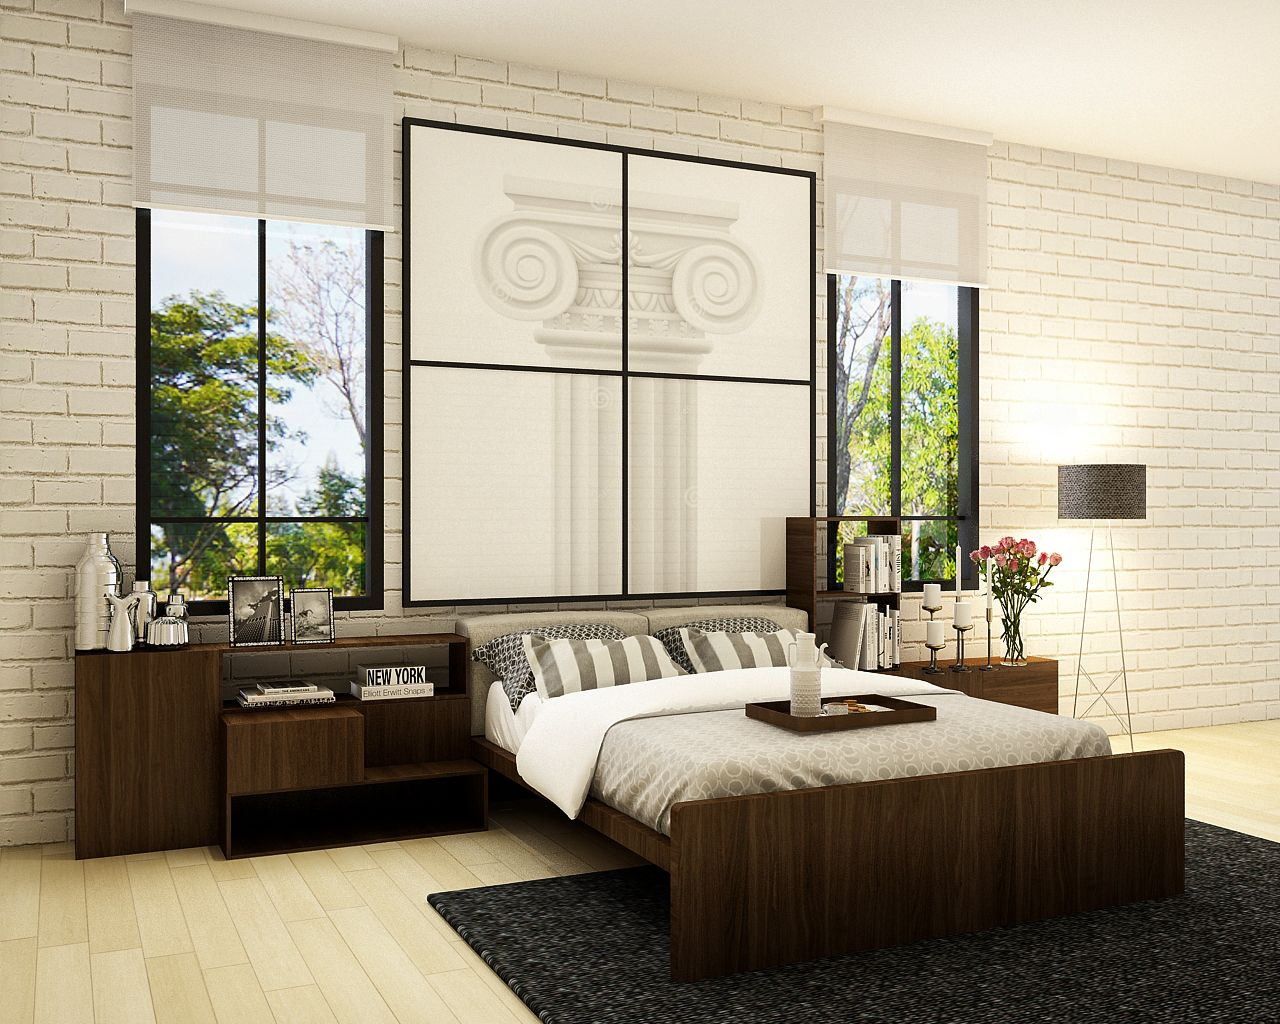 Stunning 10 classy bedrooms decorating inspiration of for Classy bedroom ideas